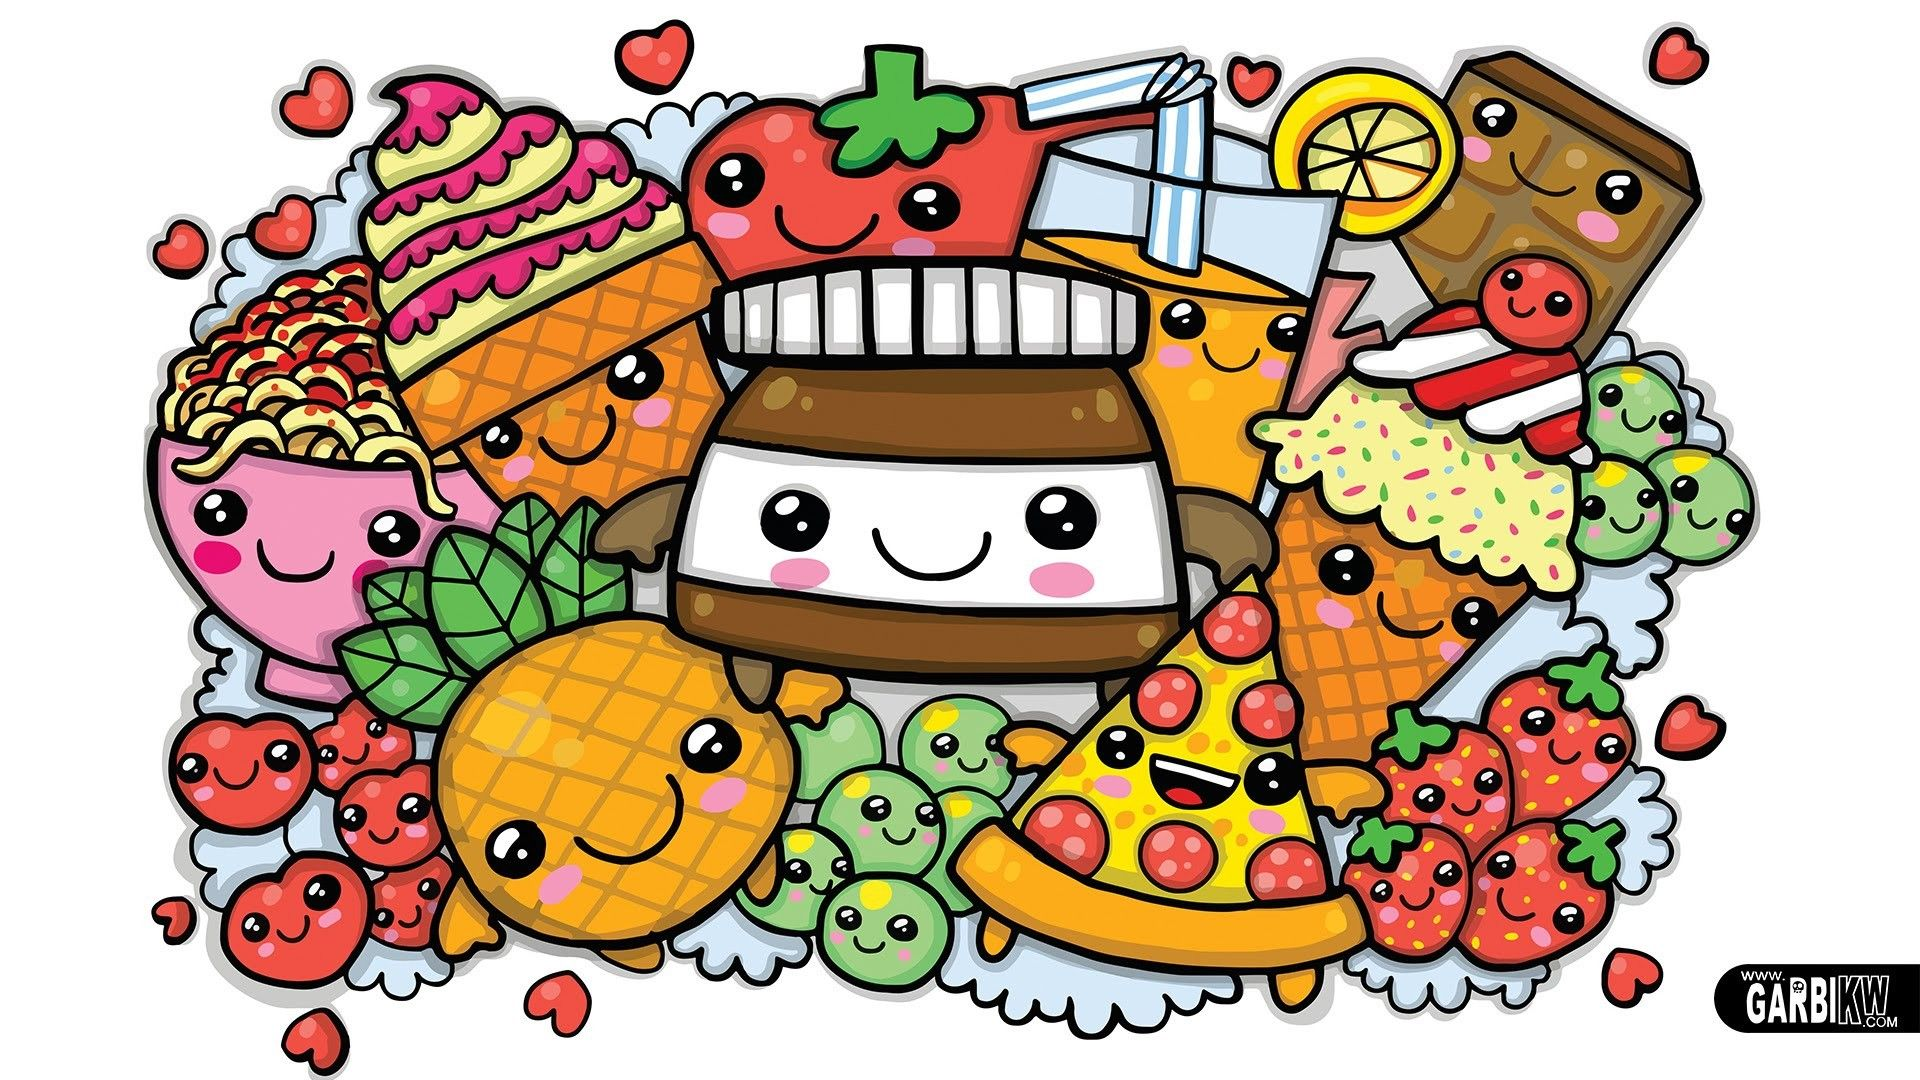 Cute Food Wallpapers   Top Cute Food Backgrounds 1920x1080